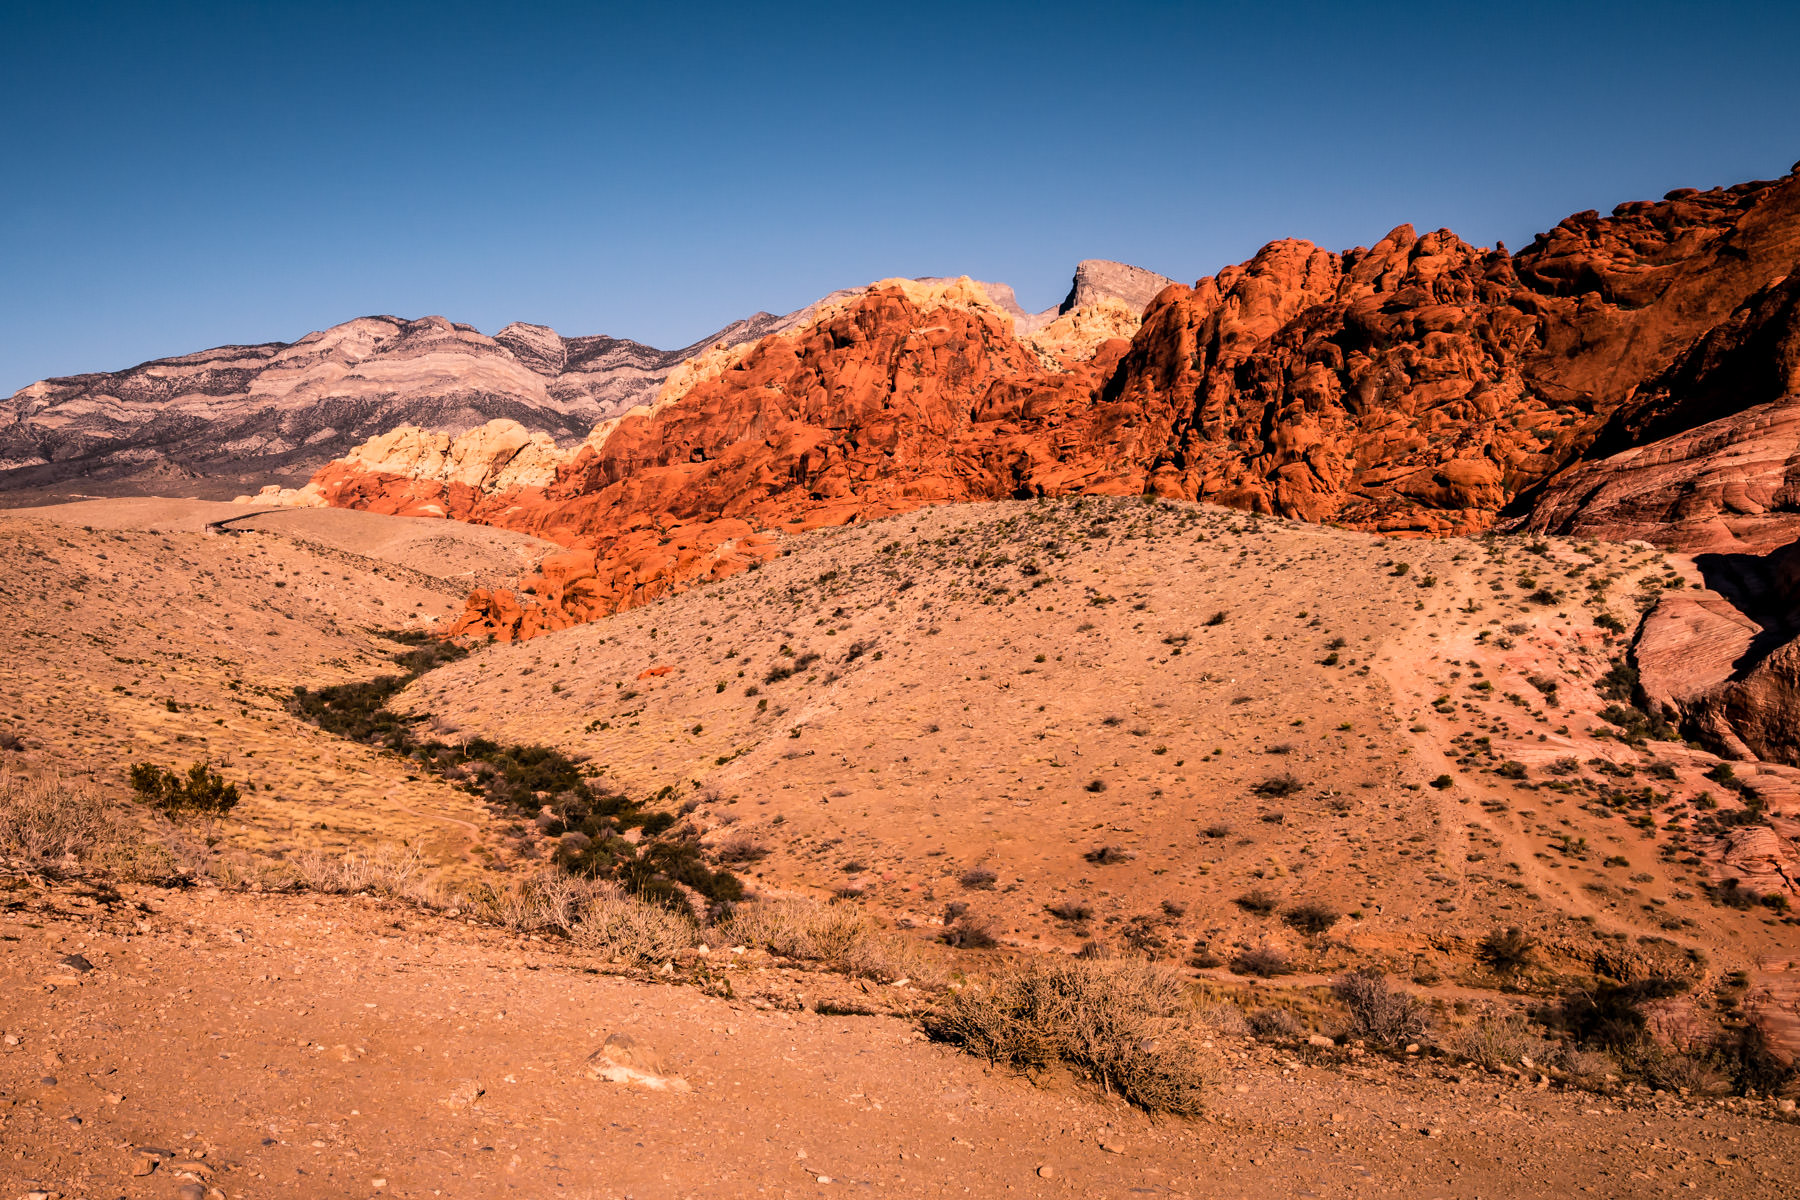 A dry creek bed snakes its way through Nevada's Red Rock Canyon.